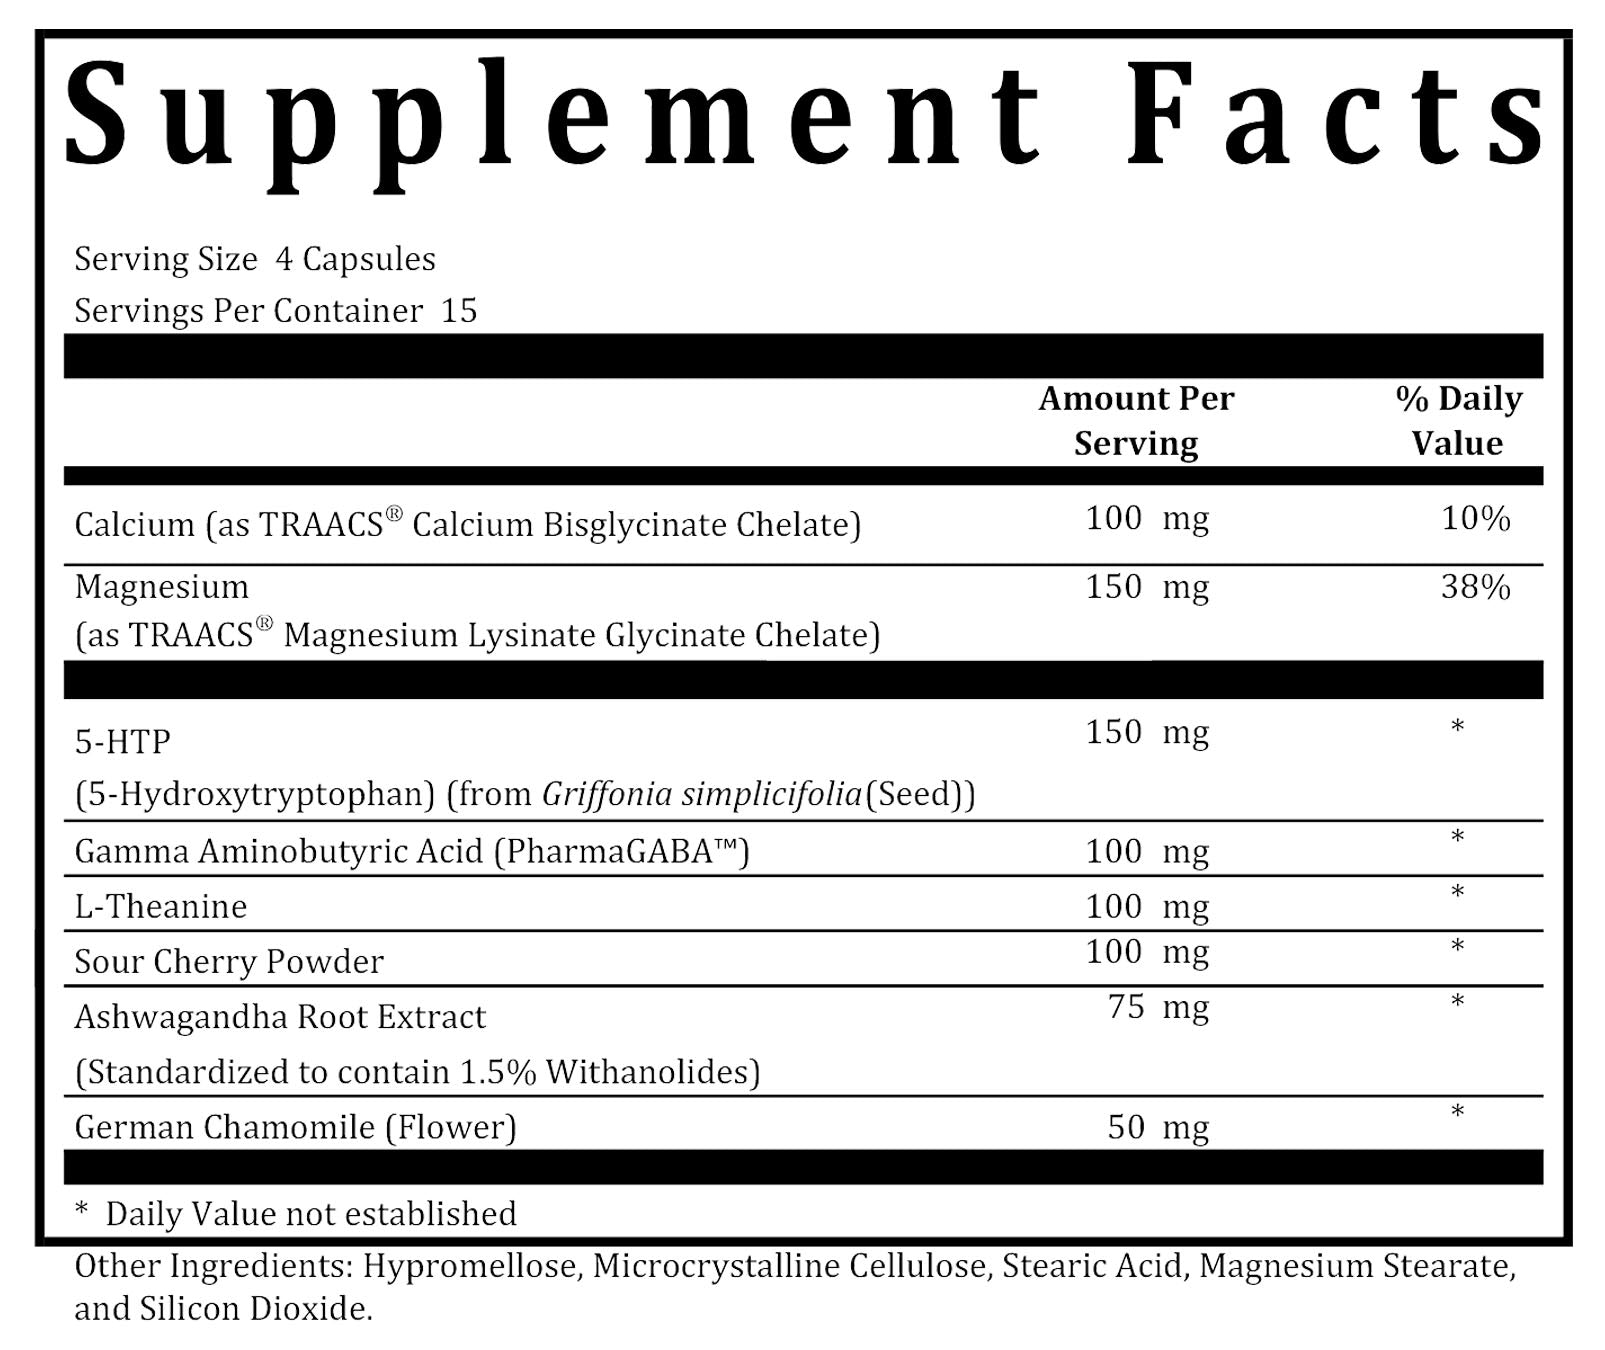 Stay Asleep supplement facts box